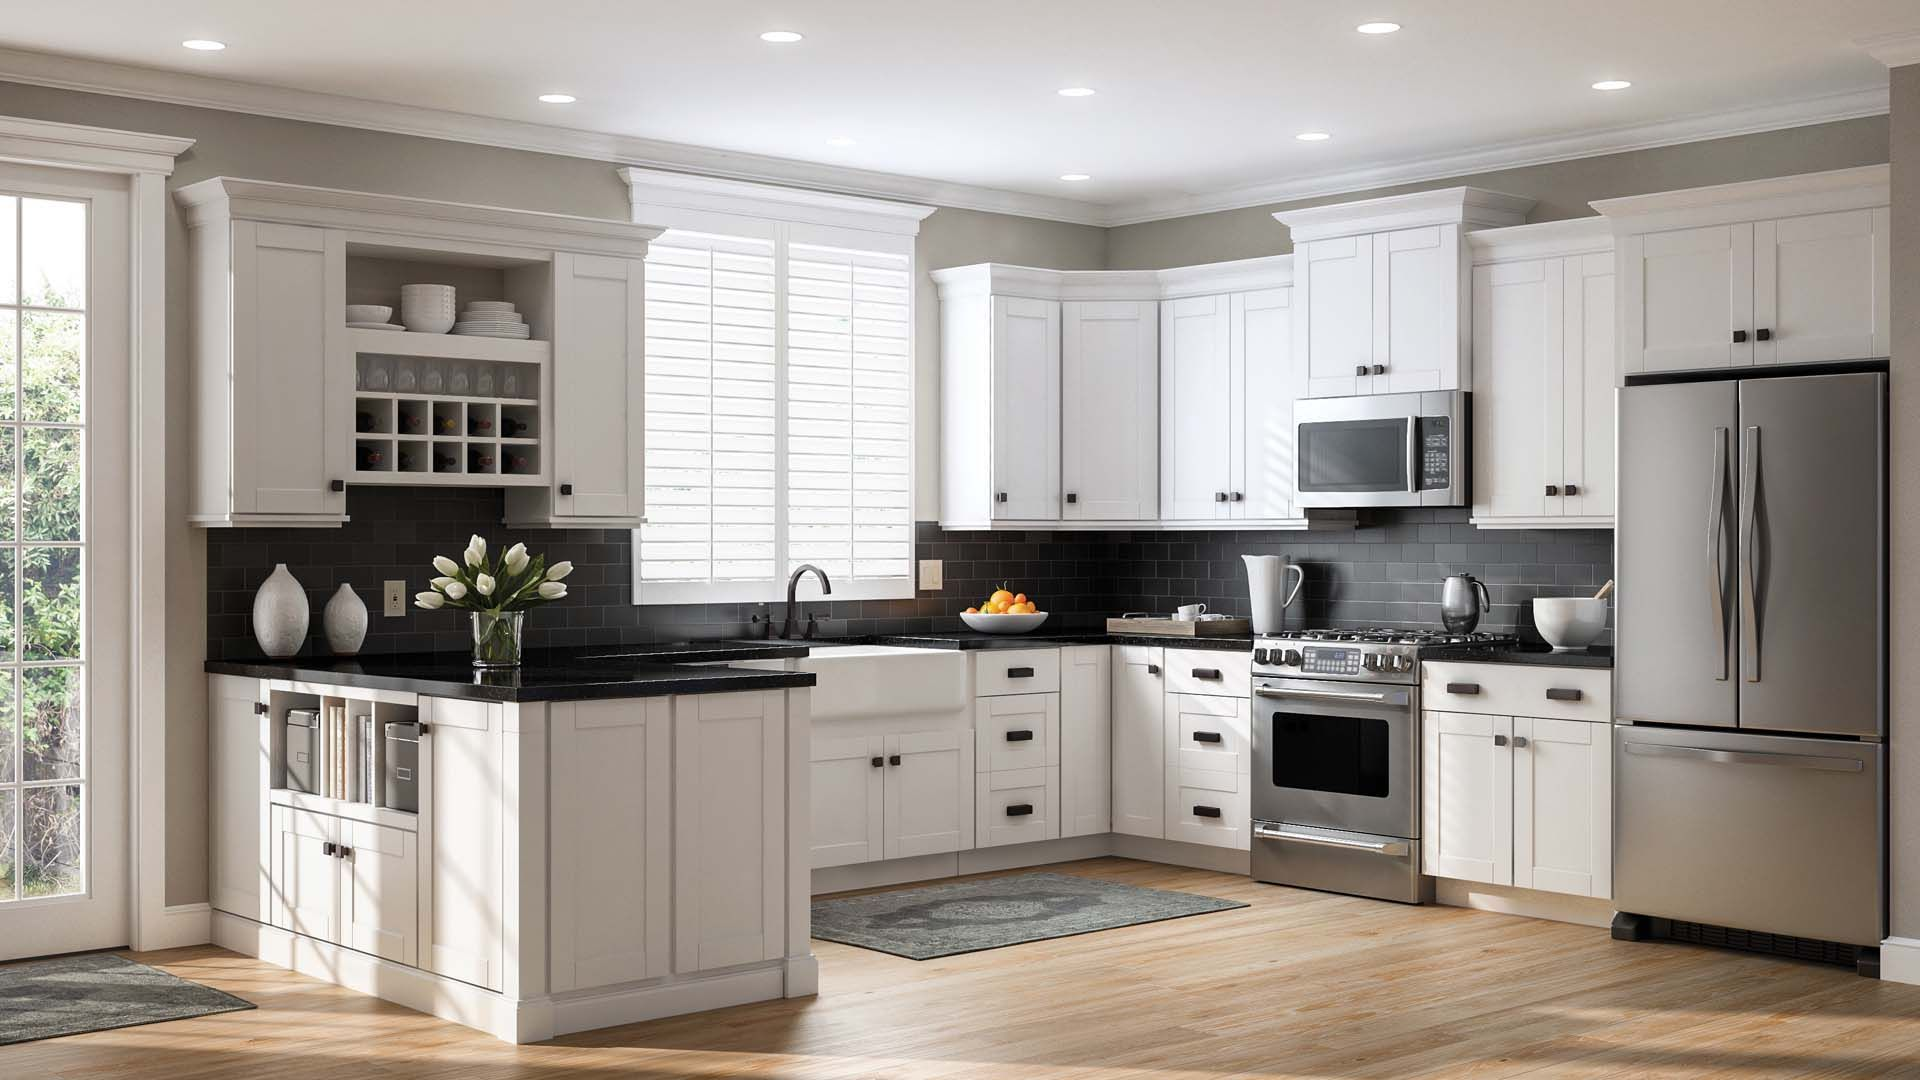 Shaker Wall Cabinets In White Kitchen The Home Depot White Shaker Kitchen White Shaker Kitchen Cabinets Kitchen Cabinet Styles